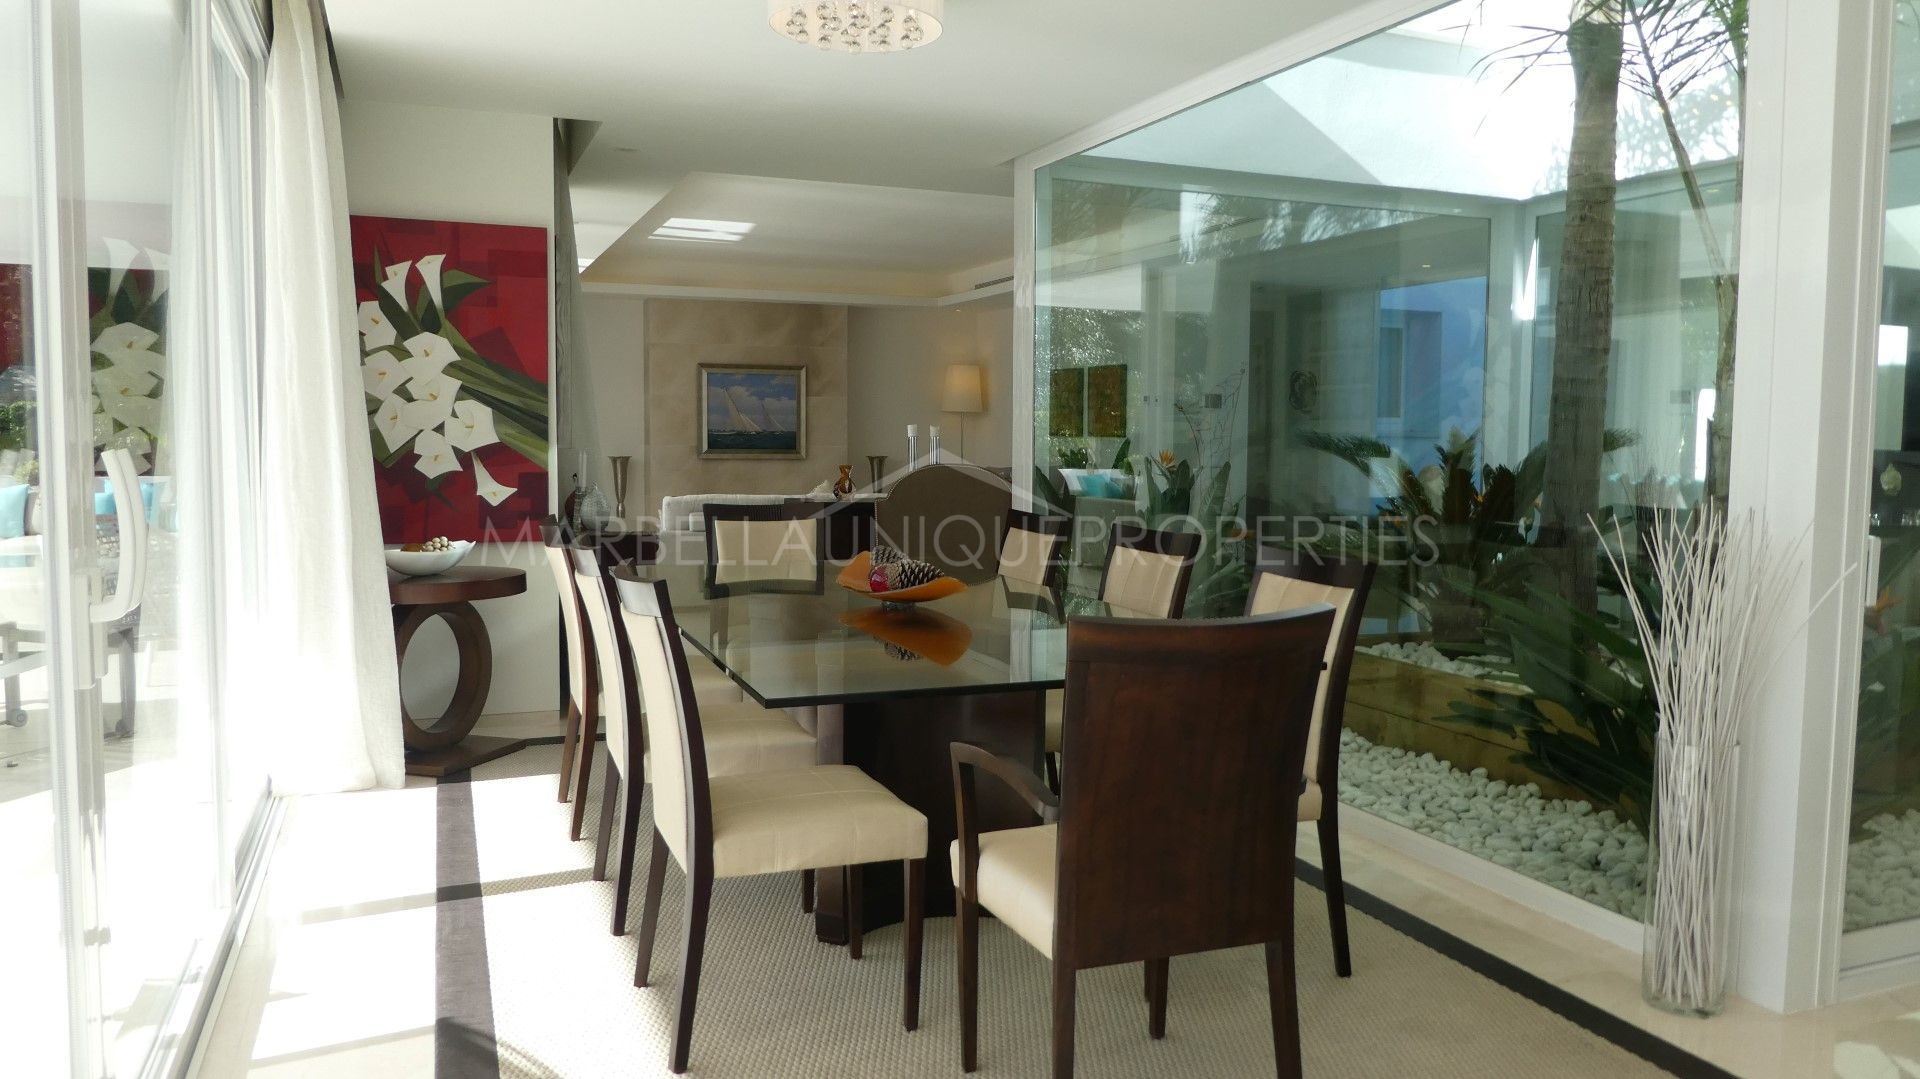 Immaculate 5 Bedroom Villa In Altos De Puente Romano